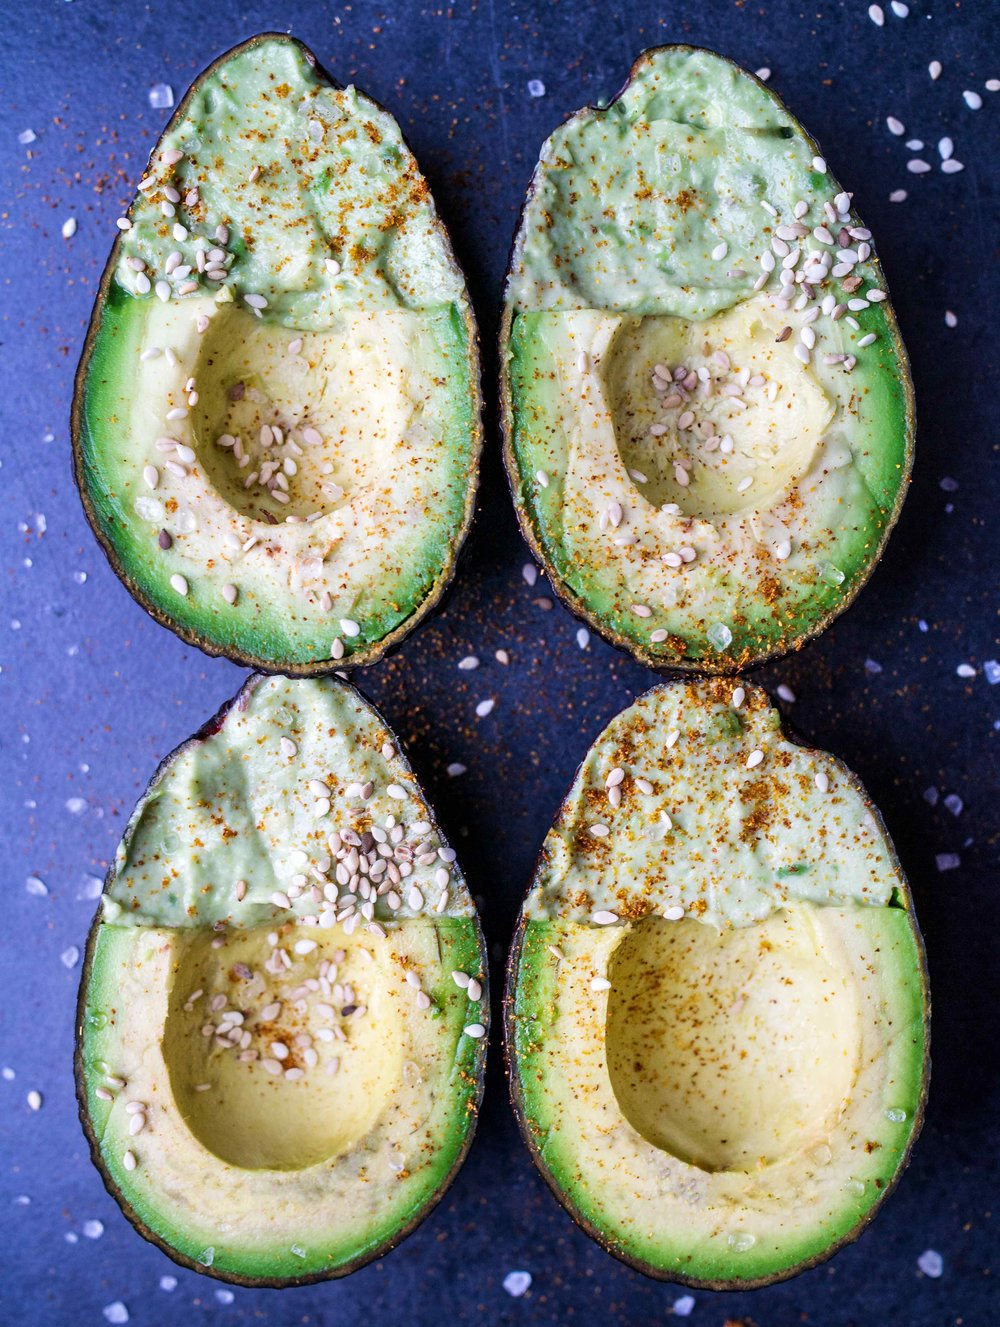 Creamy Filled Avocadoes | Discover Delicious | www.discoverdelicious.org | Vegan Food Blog